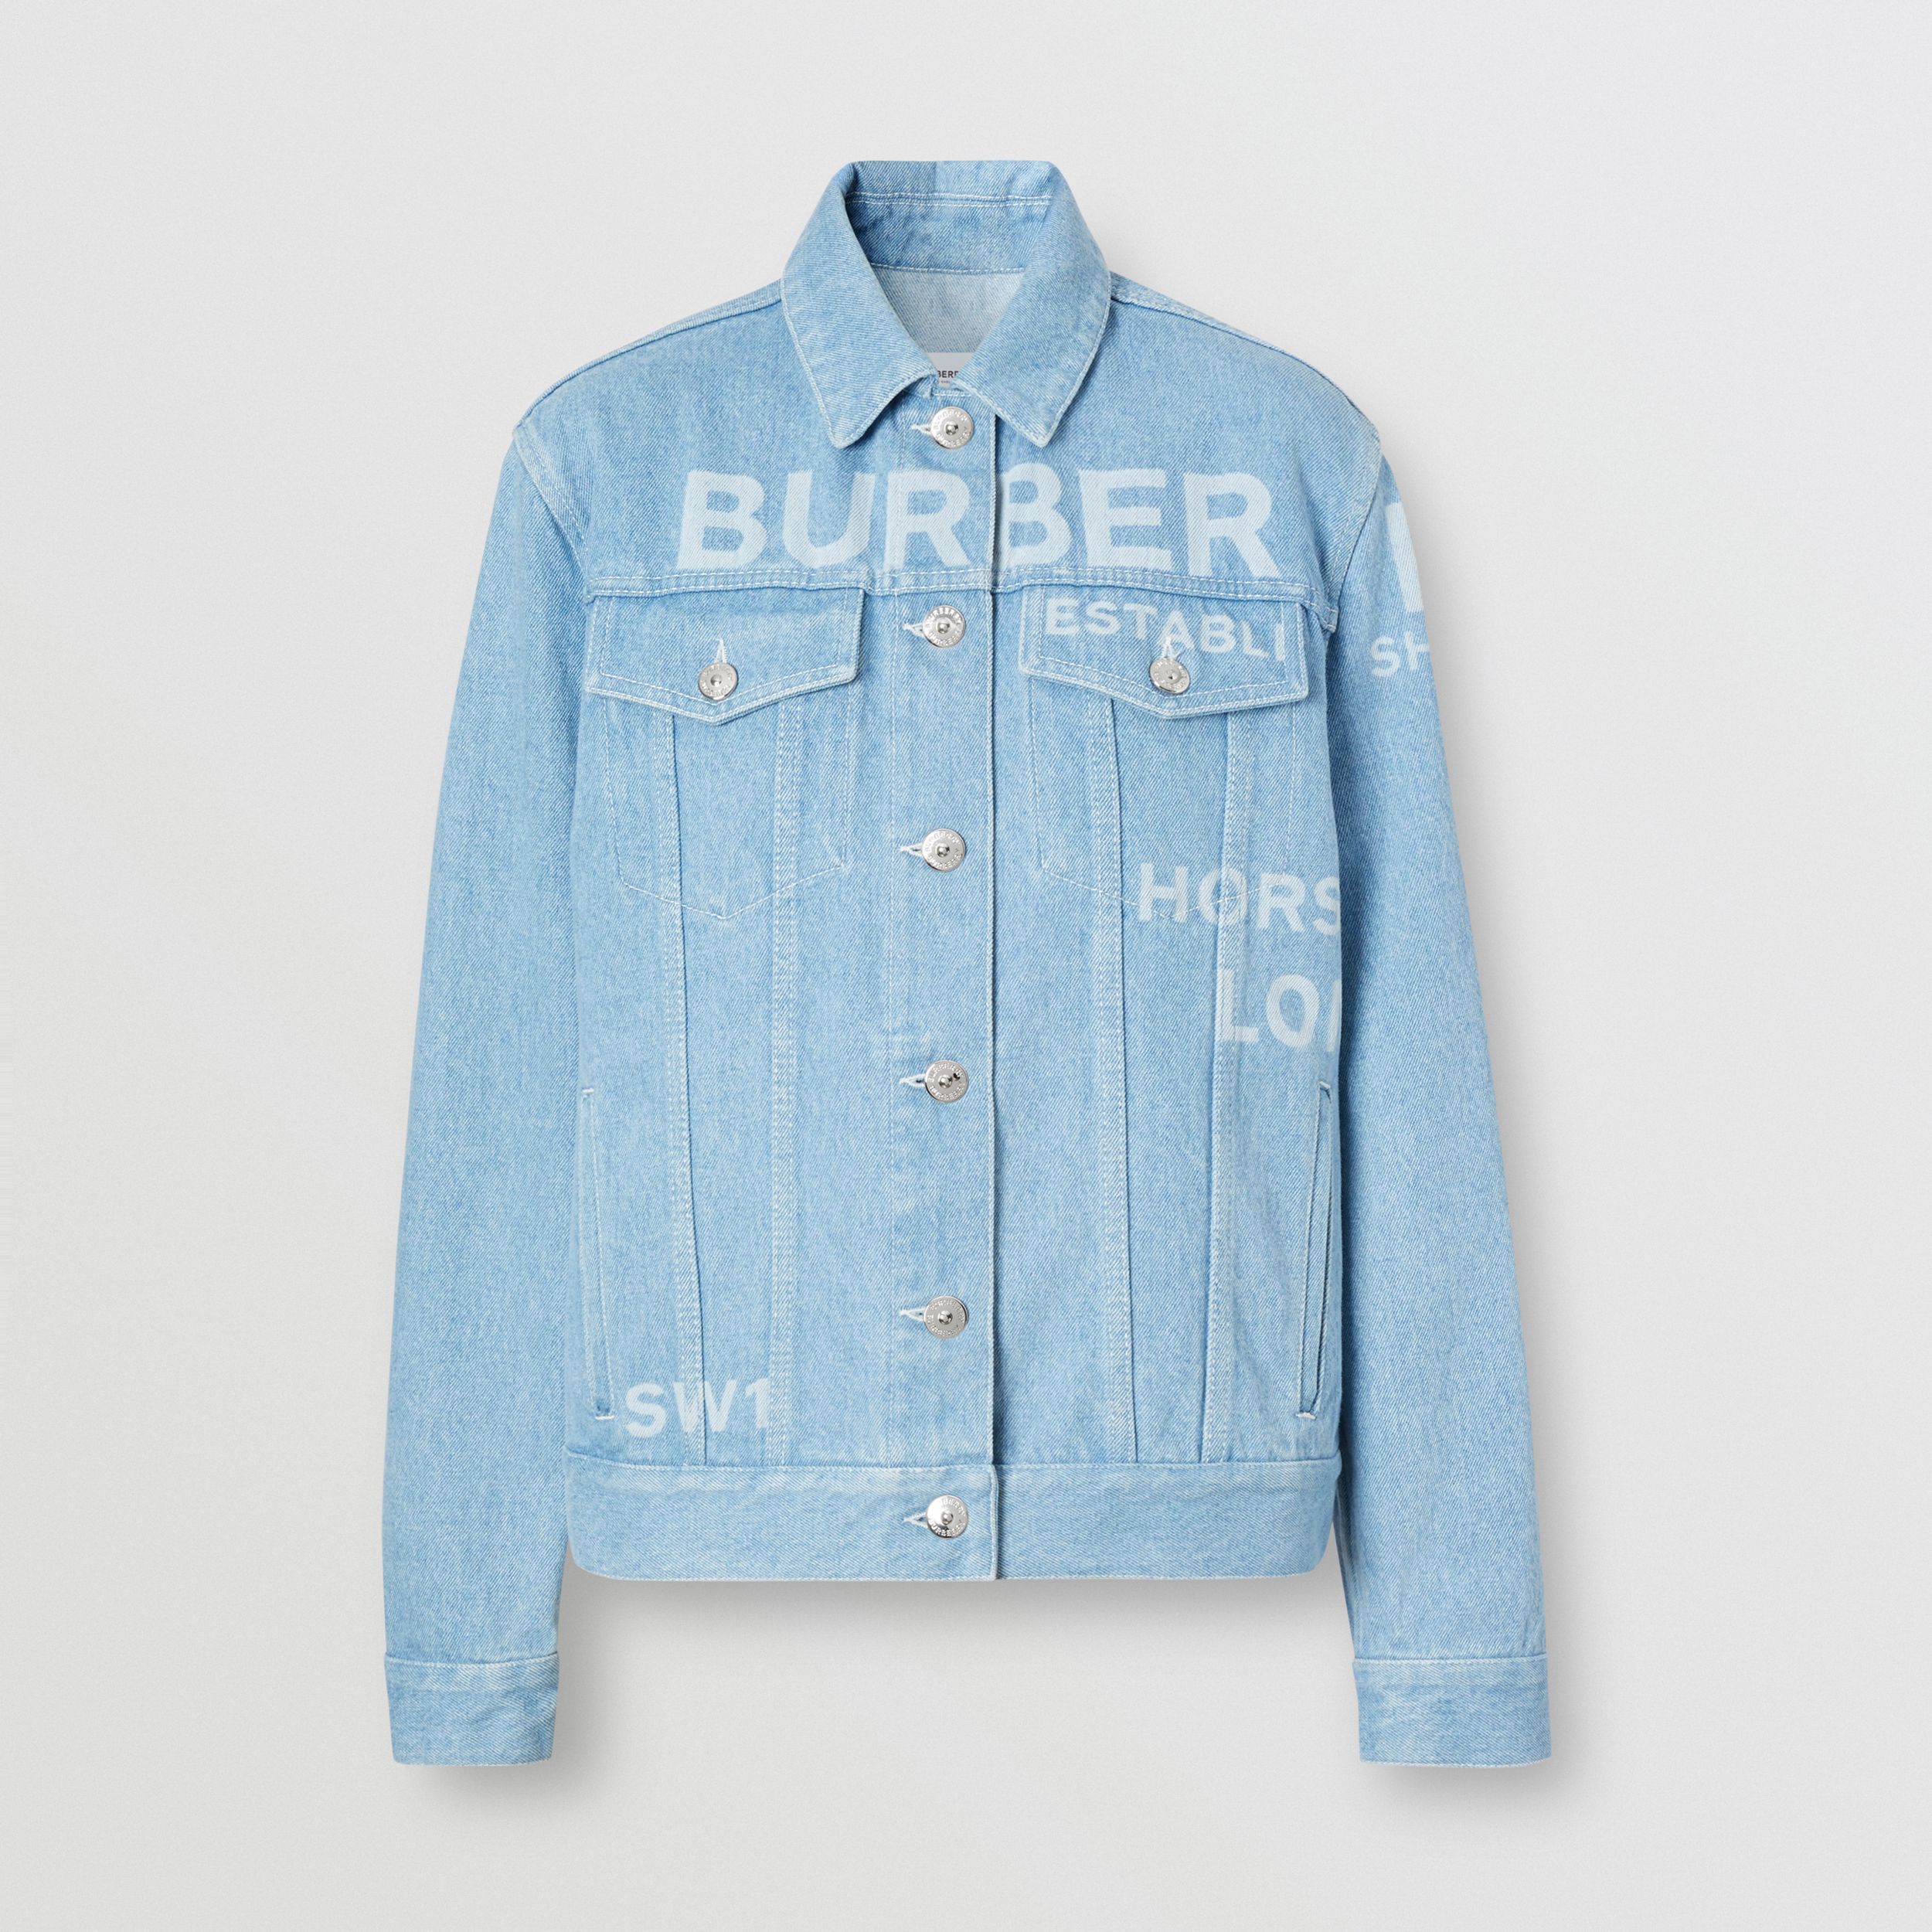 Horseferry Print Bleached Denim Jacket in Light Indigo - Women | Burberry - 4